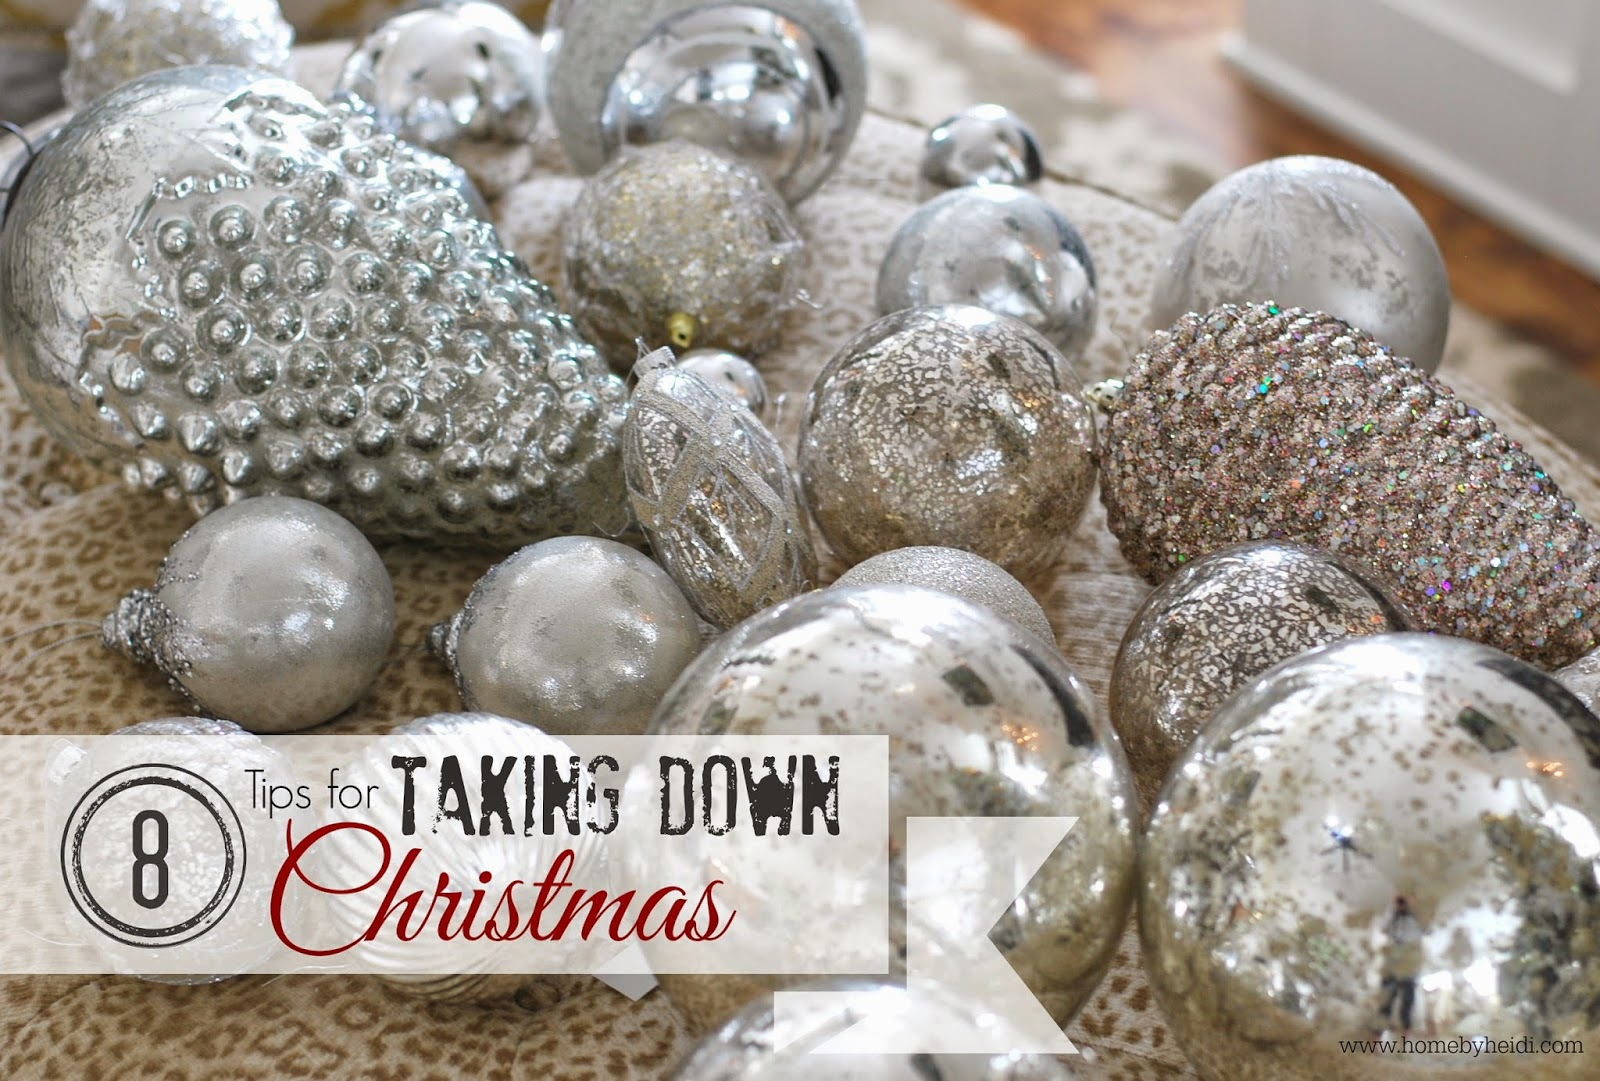 What day to take christmas decor down - 8 Tips For Taking Down Christmas Decor